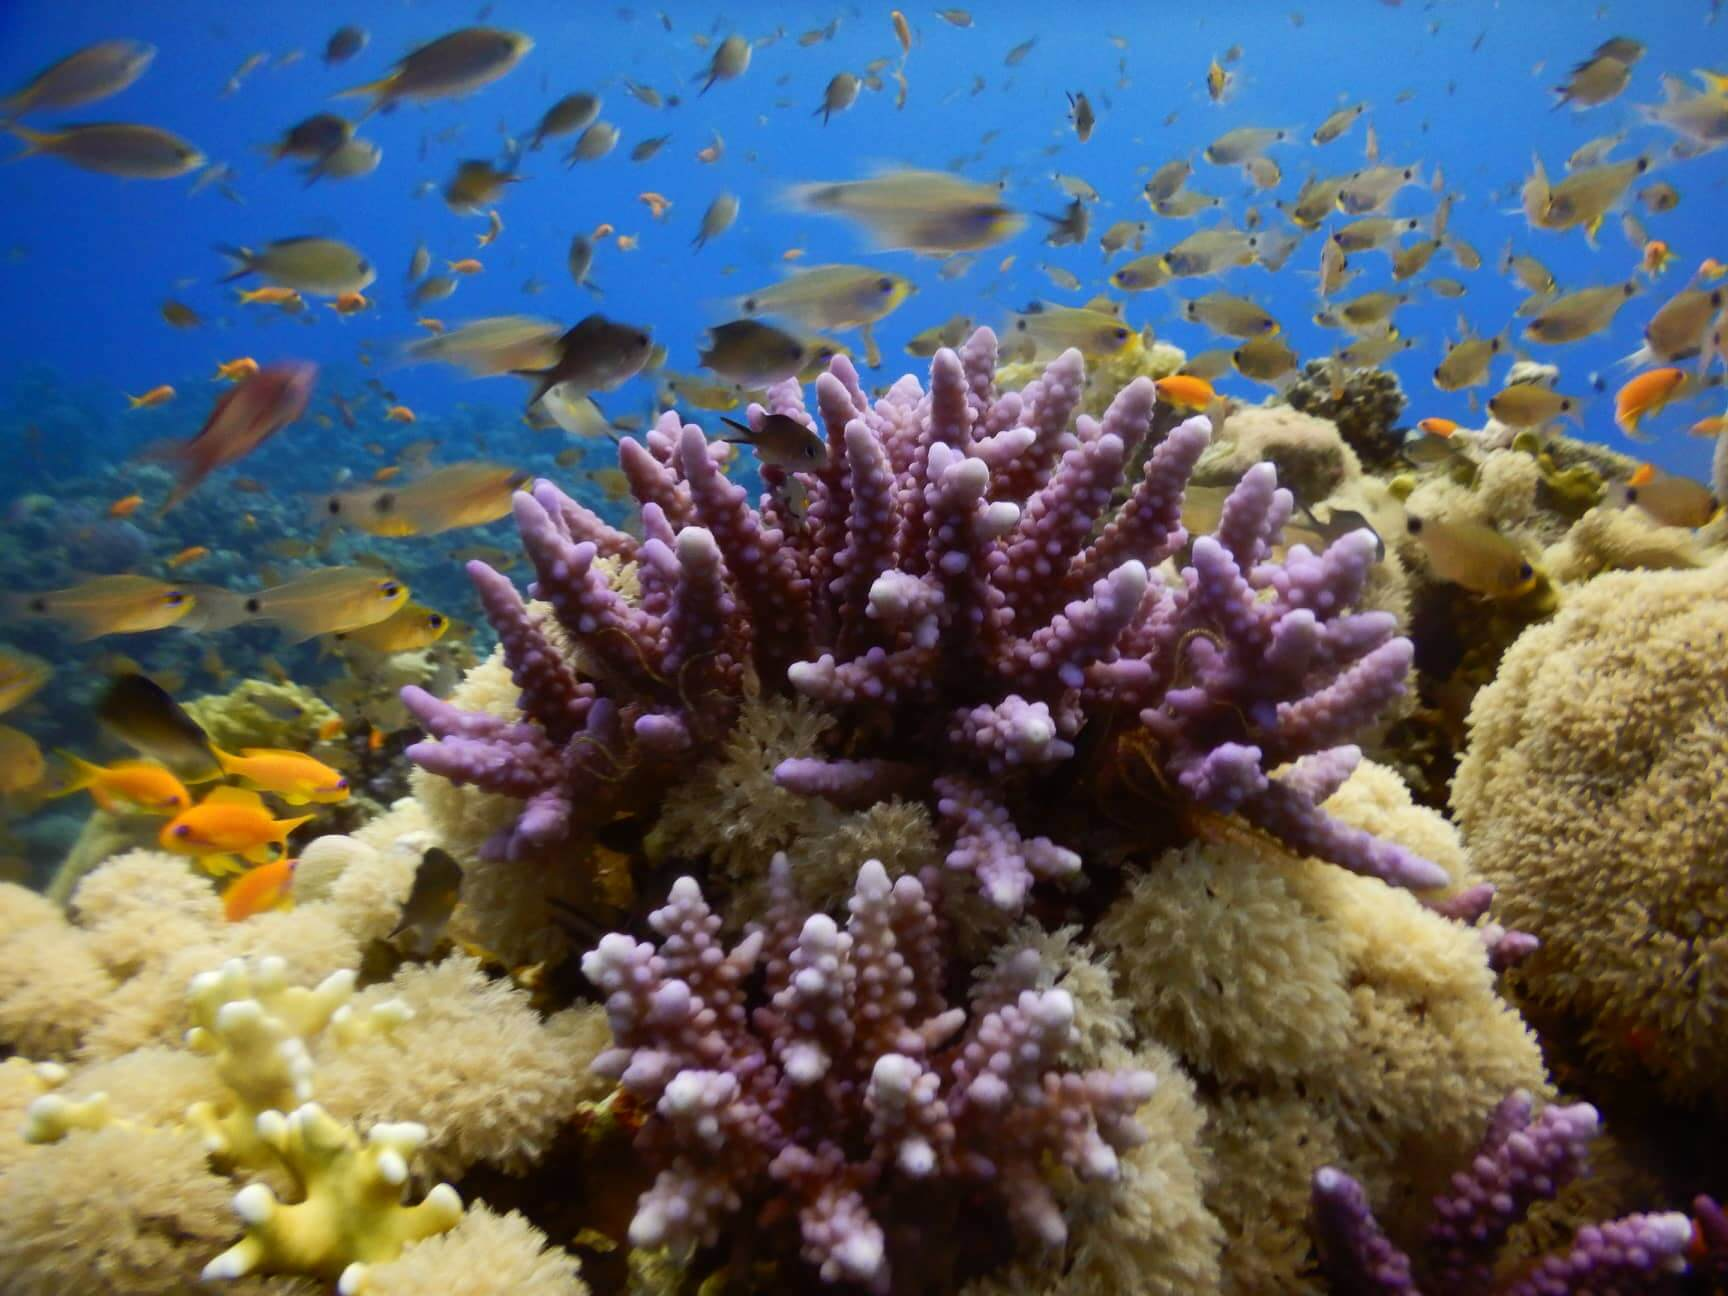 Egypt-REDSEA-Hurghada-Divepro-Academy-Diving-Center-House-Reef